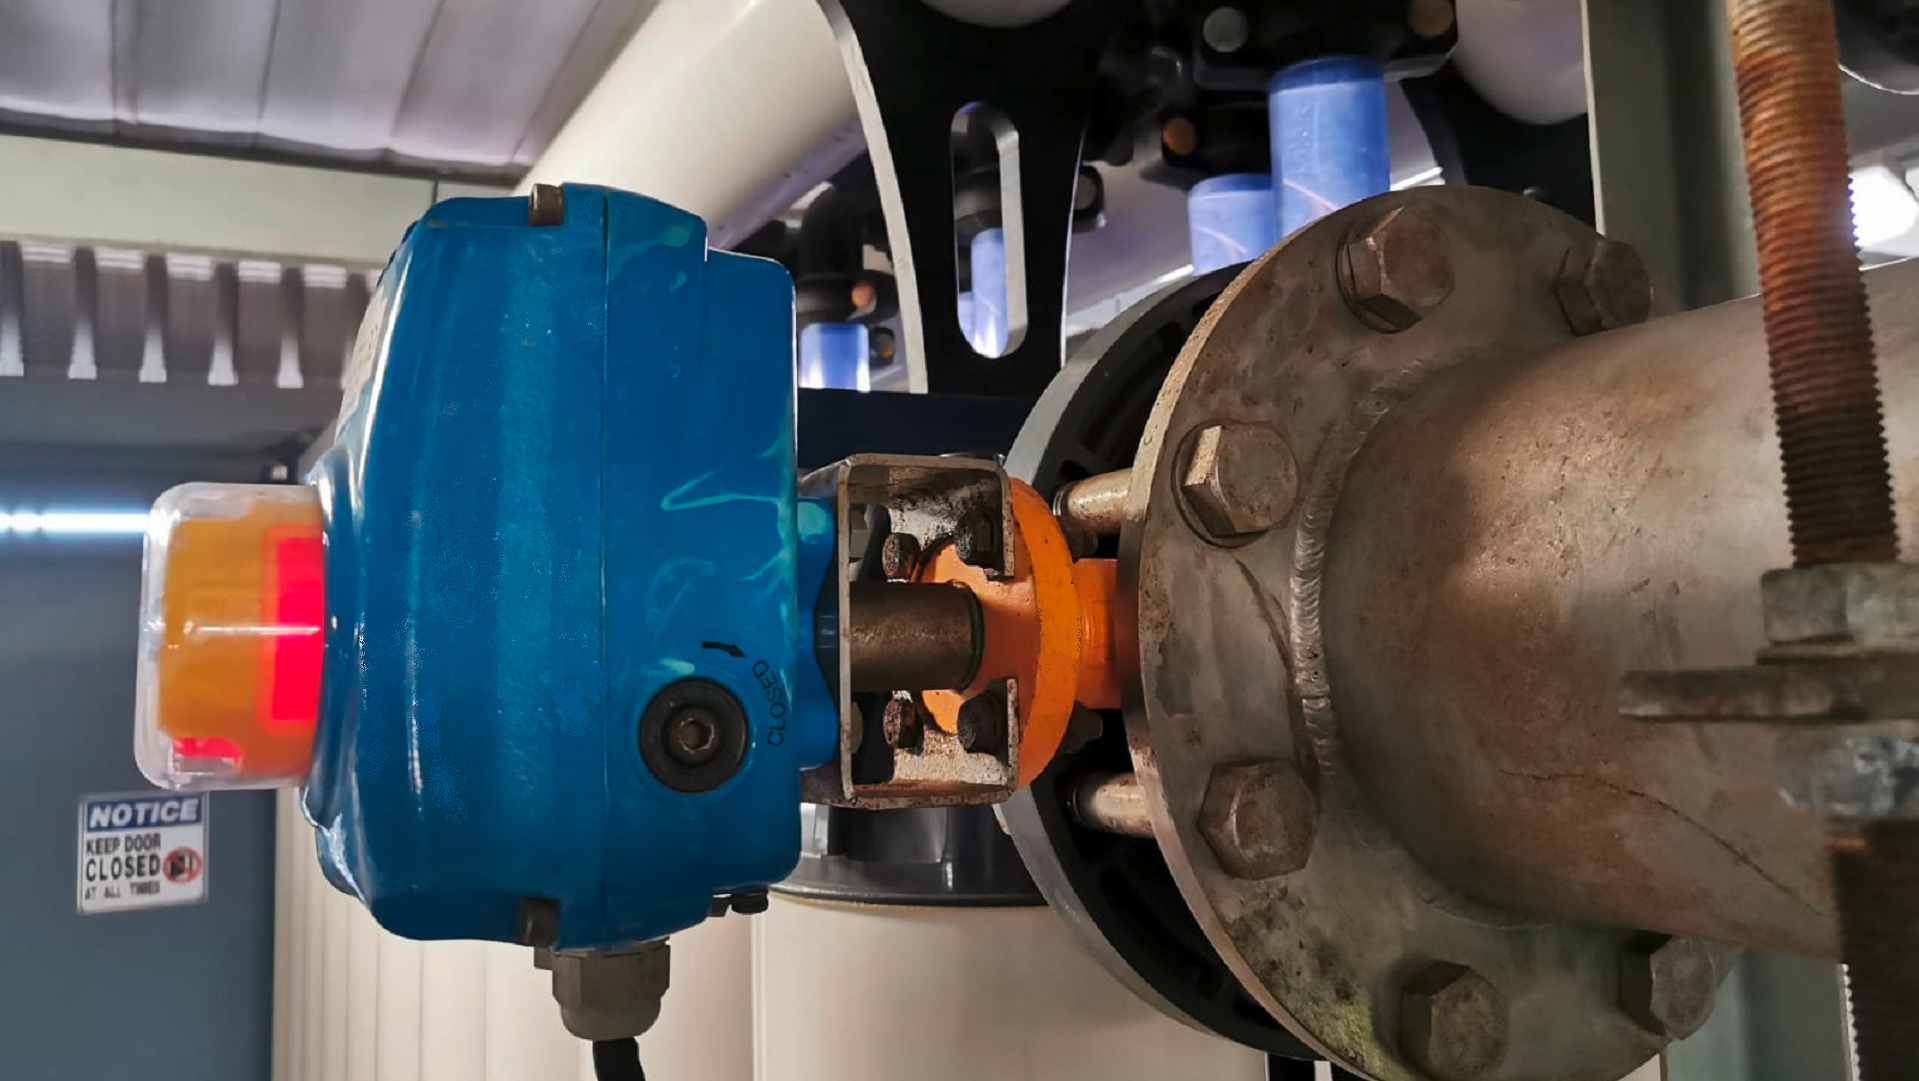 The Wouter Witzel butterfly valve installed at the water reclamation plant